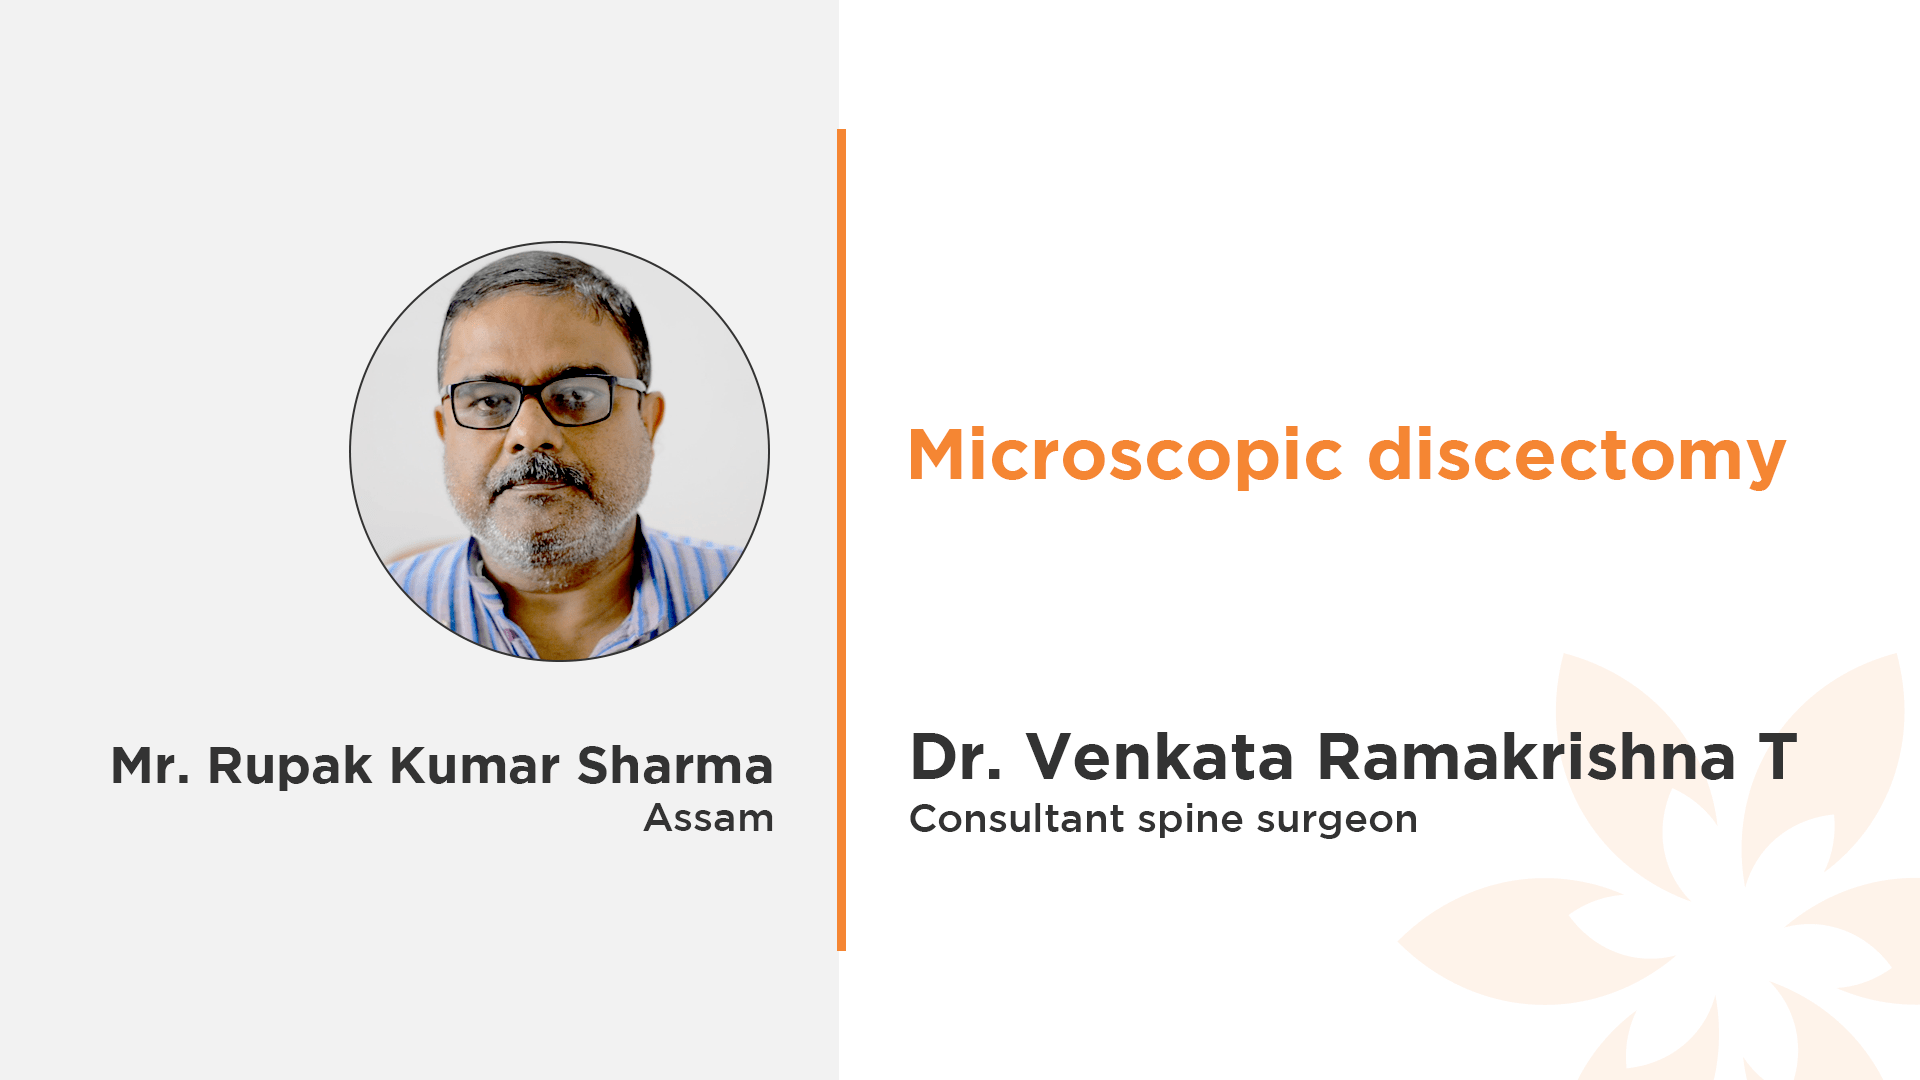 Mr. Rupak Kumar Sharma Treatment for Microscopic Discectomy